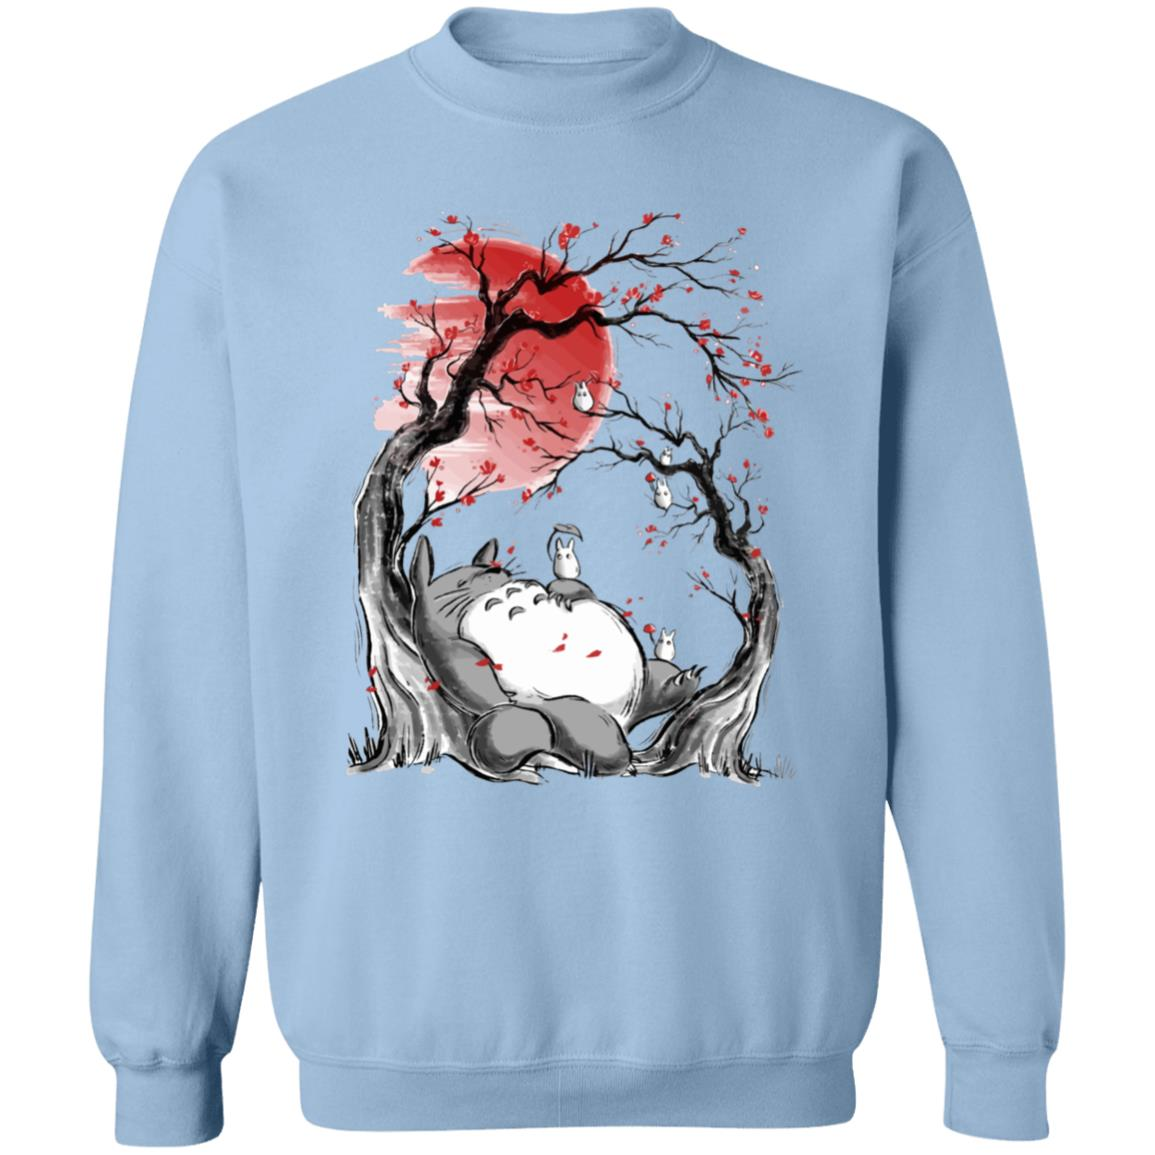 Totoro – Dreaming under the Sakura Sweatshirt